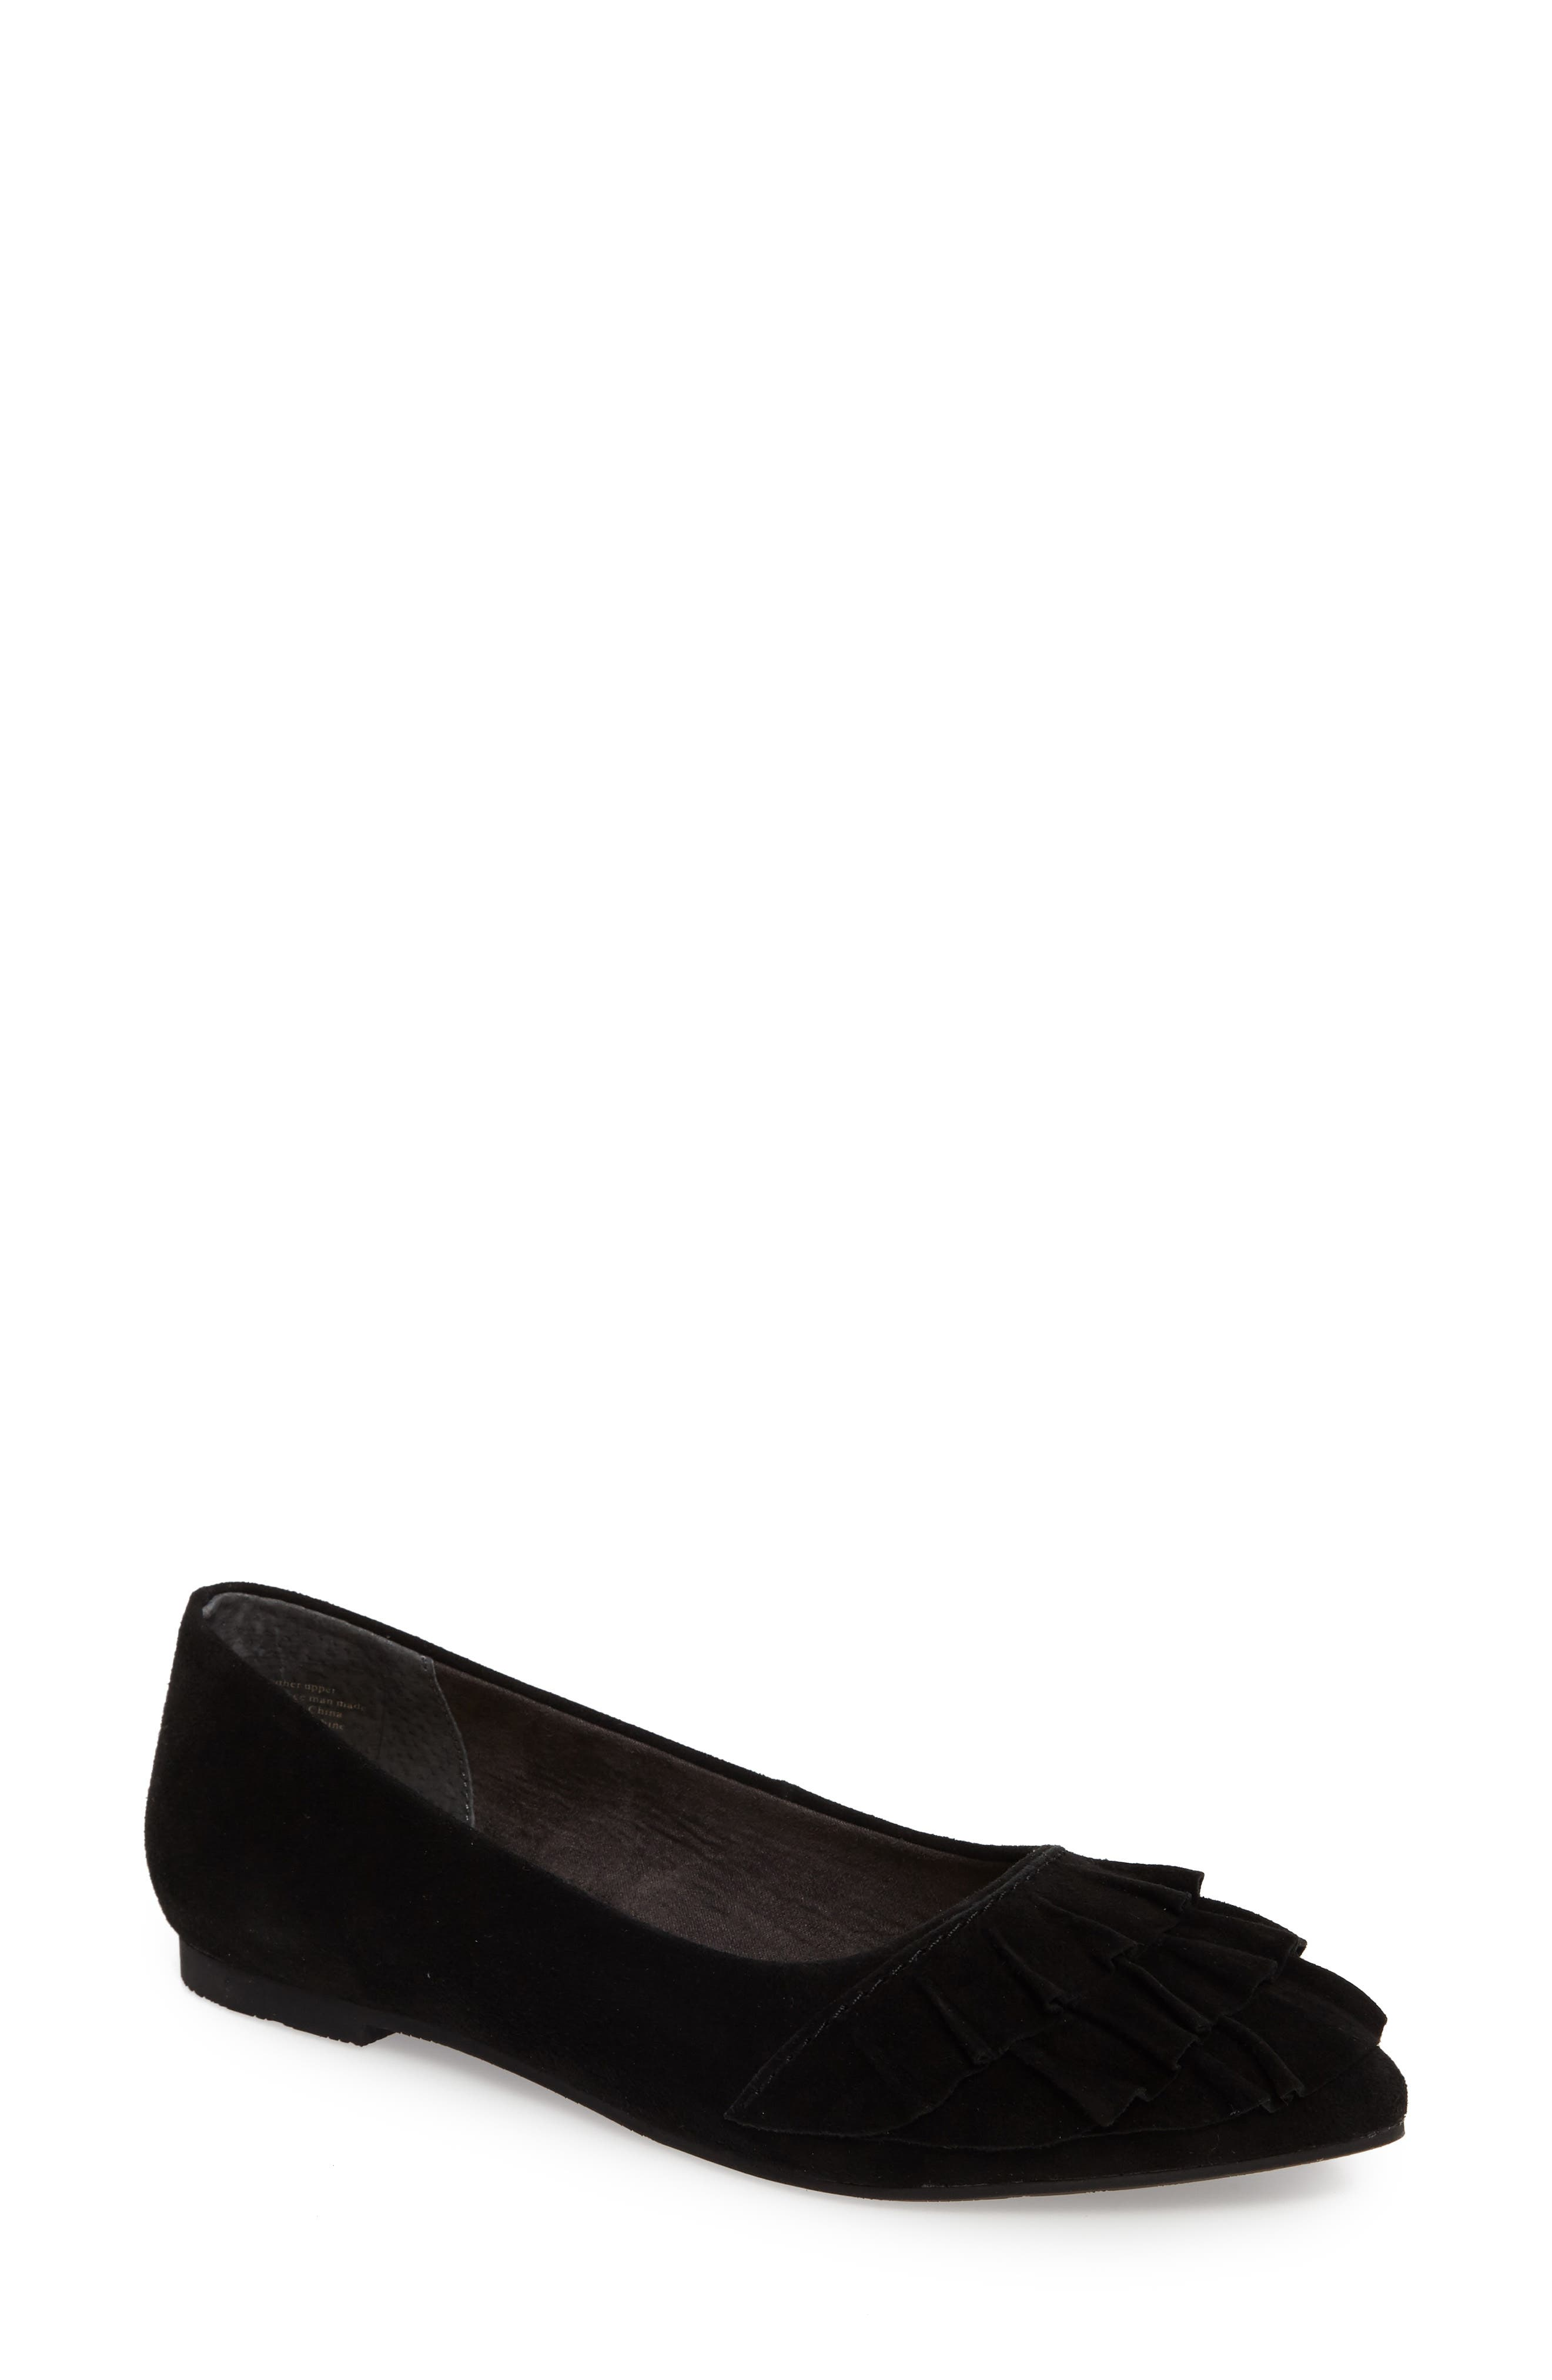 Alternate Image 1 Selected - Seychelles Downstage Pointy Toe Flat (Women)